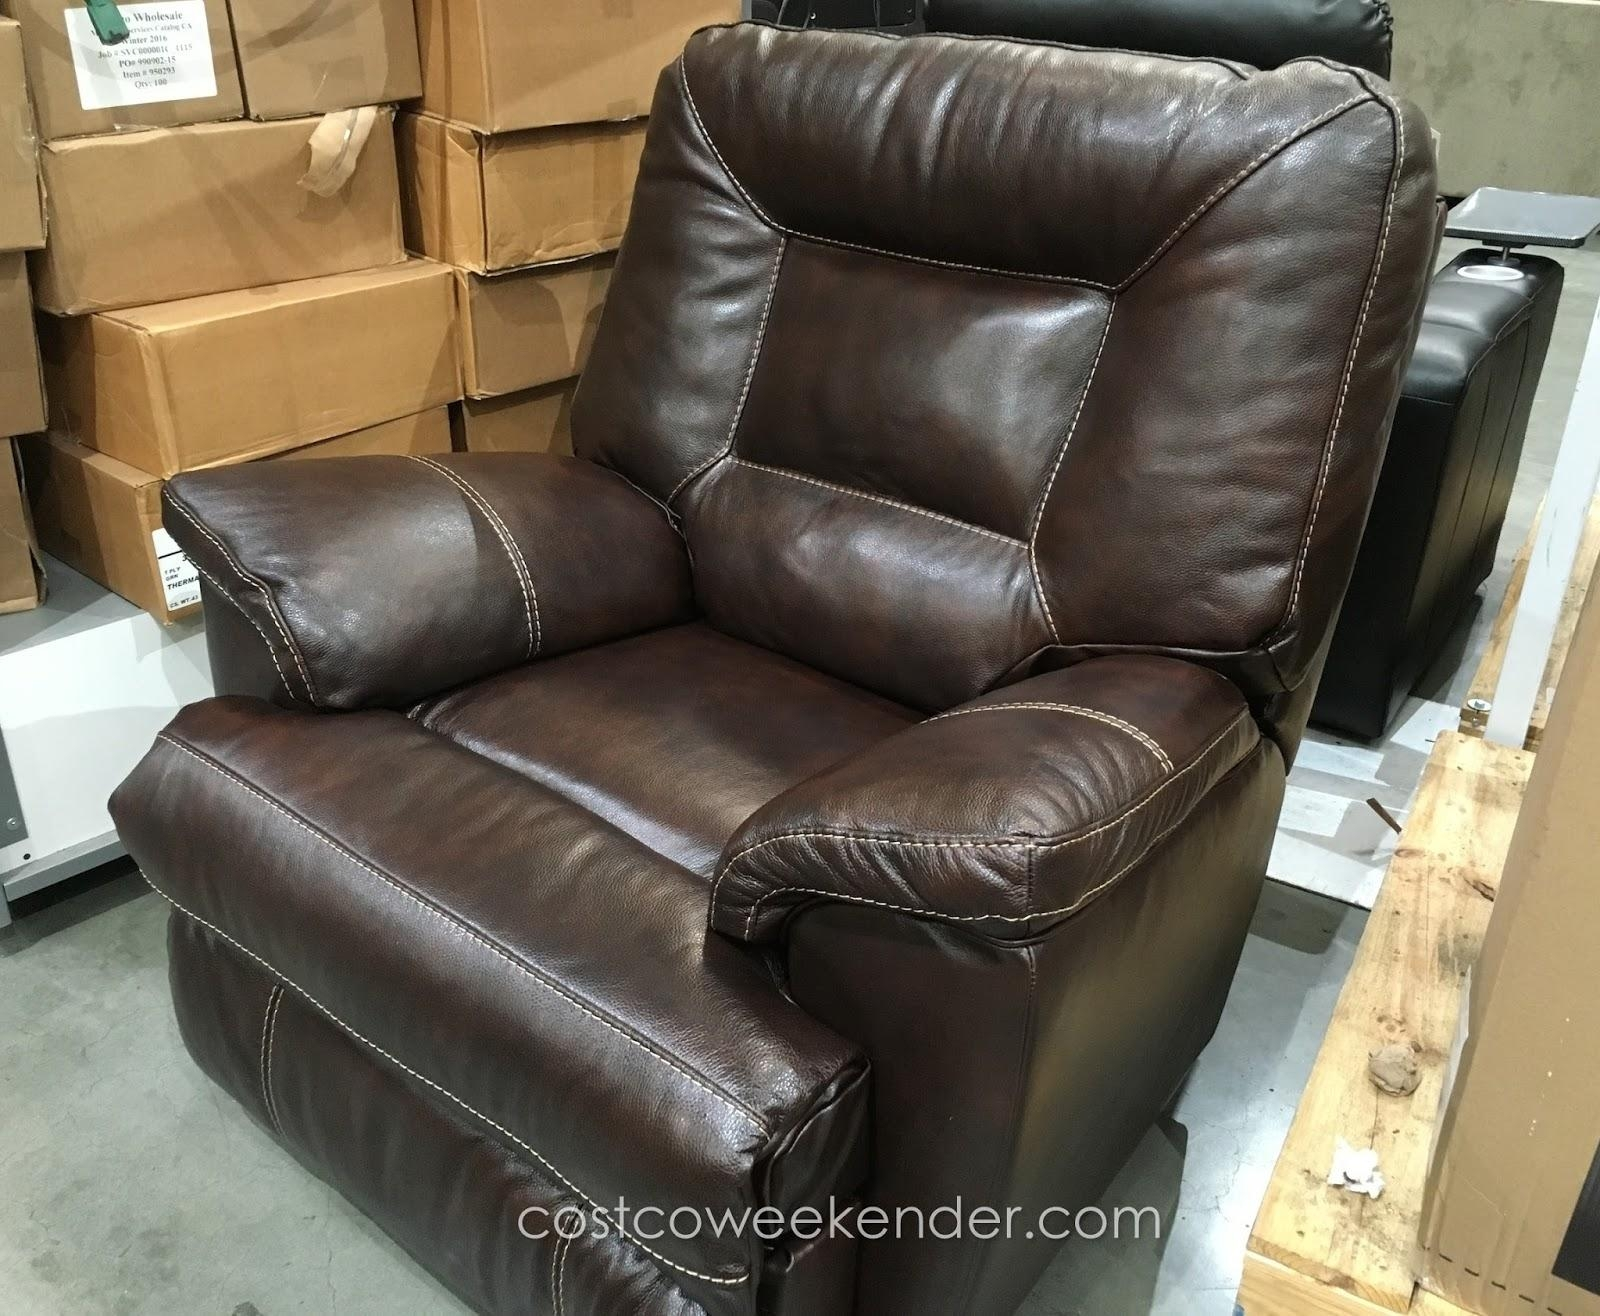 Furniture & Sofa: Enjoy Your Holiday With Costco Home Theater With Berkline Recliner Sofas (View 5 of 20)